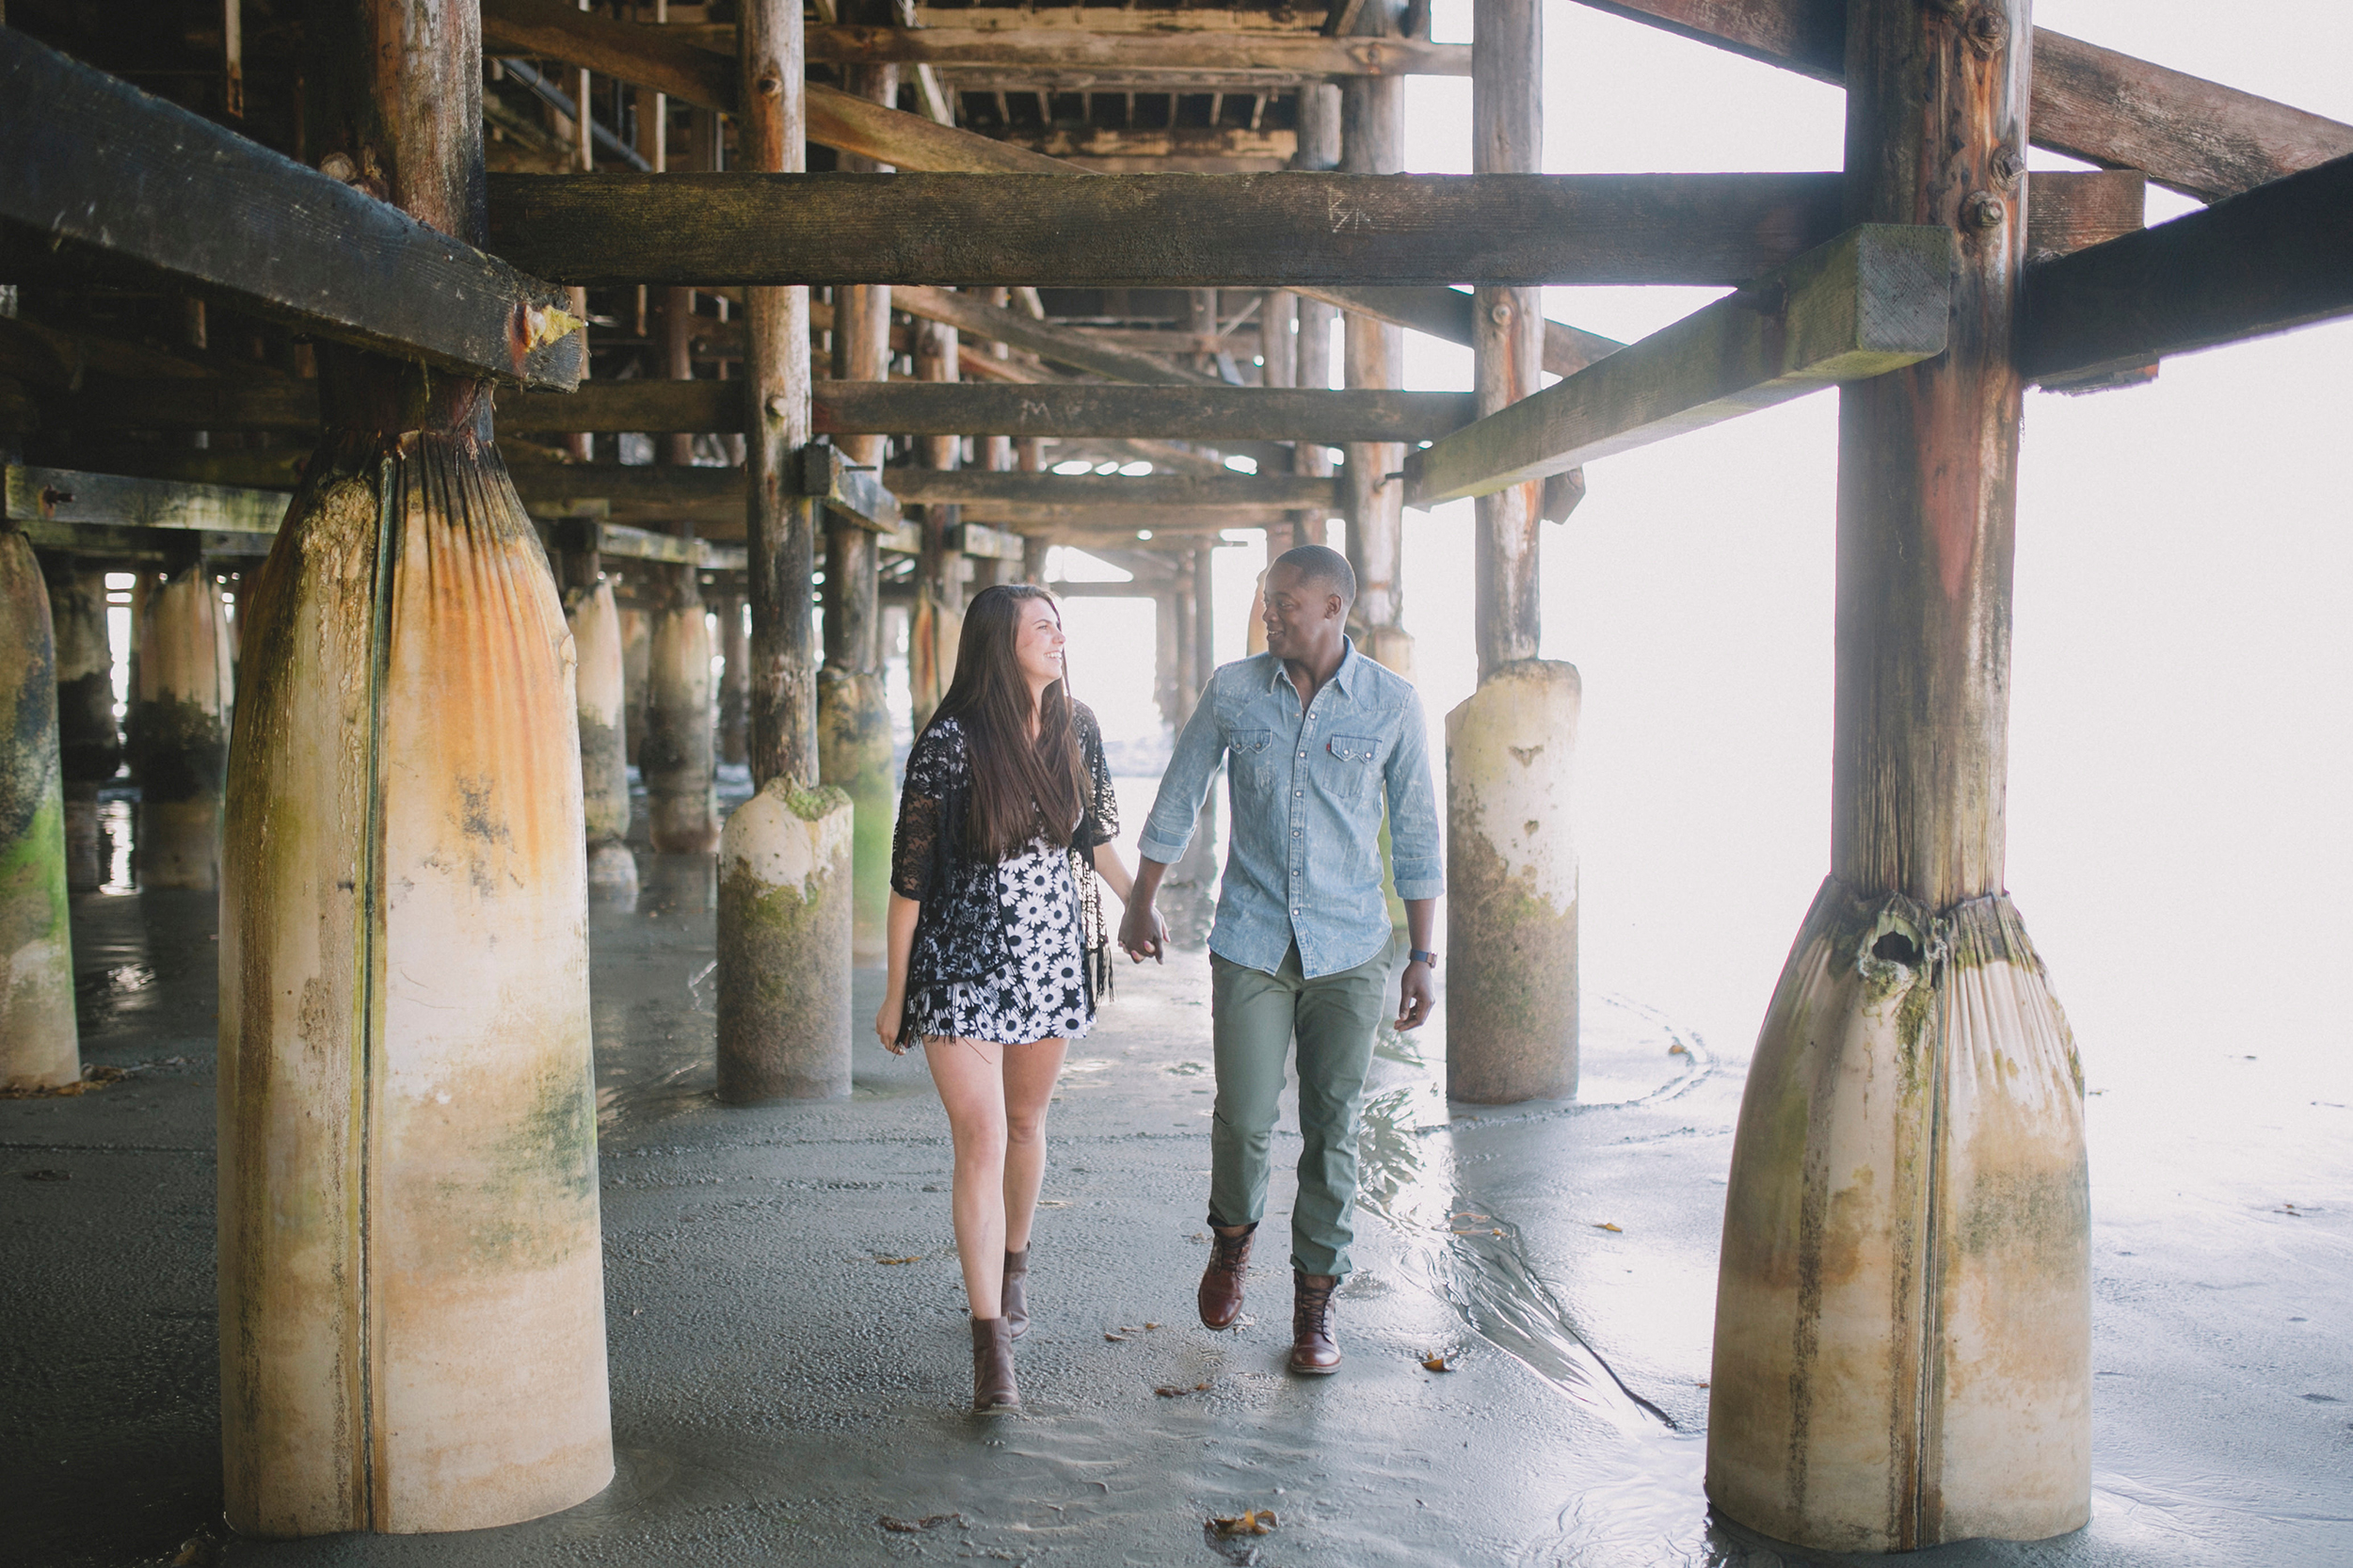 Colby-and-Jess-Adventure-Engagement-Photography-Torrey-Pines-La-Jolla-California15.jpg